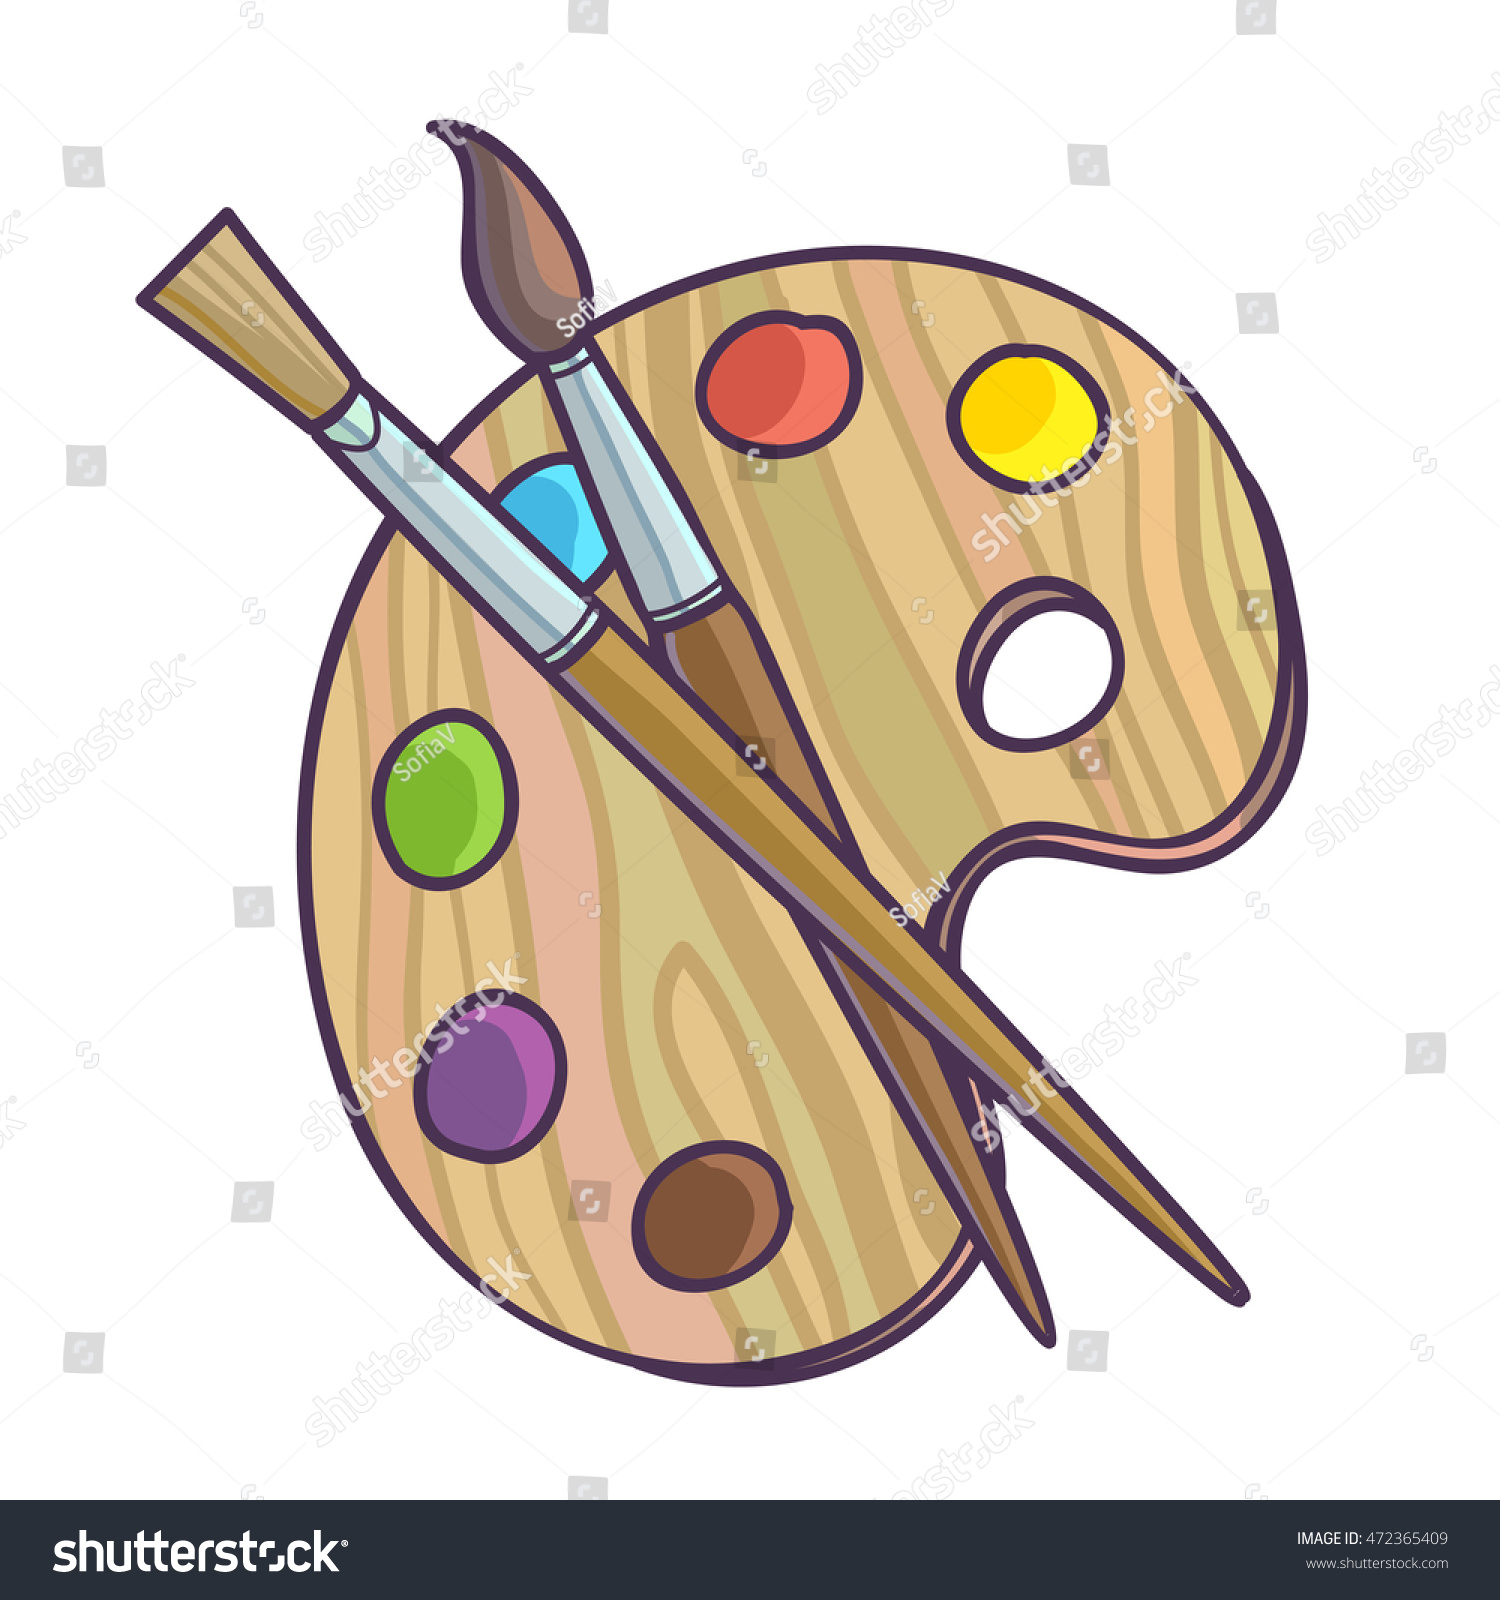 Art Palette Paint Brush Drawing Vector Stock Vector (Royalty Free) 472365409